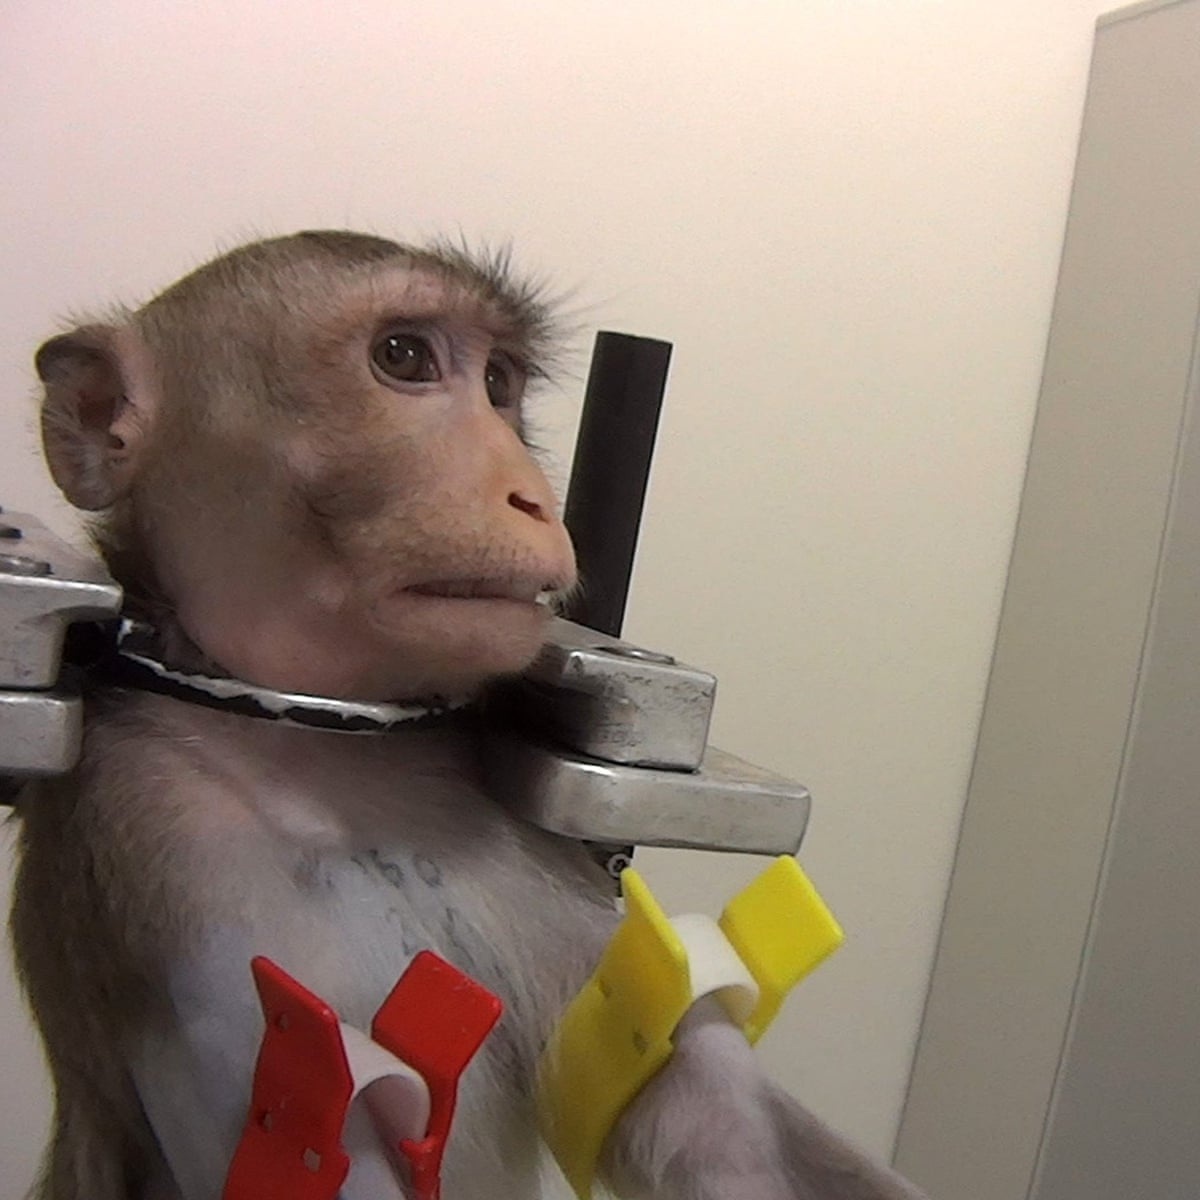 Barbaric' tests on monkeys lead to calls for closure of German lab ...